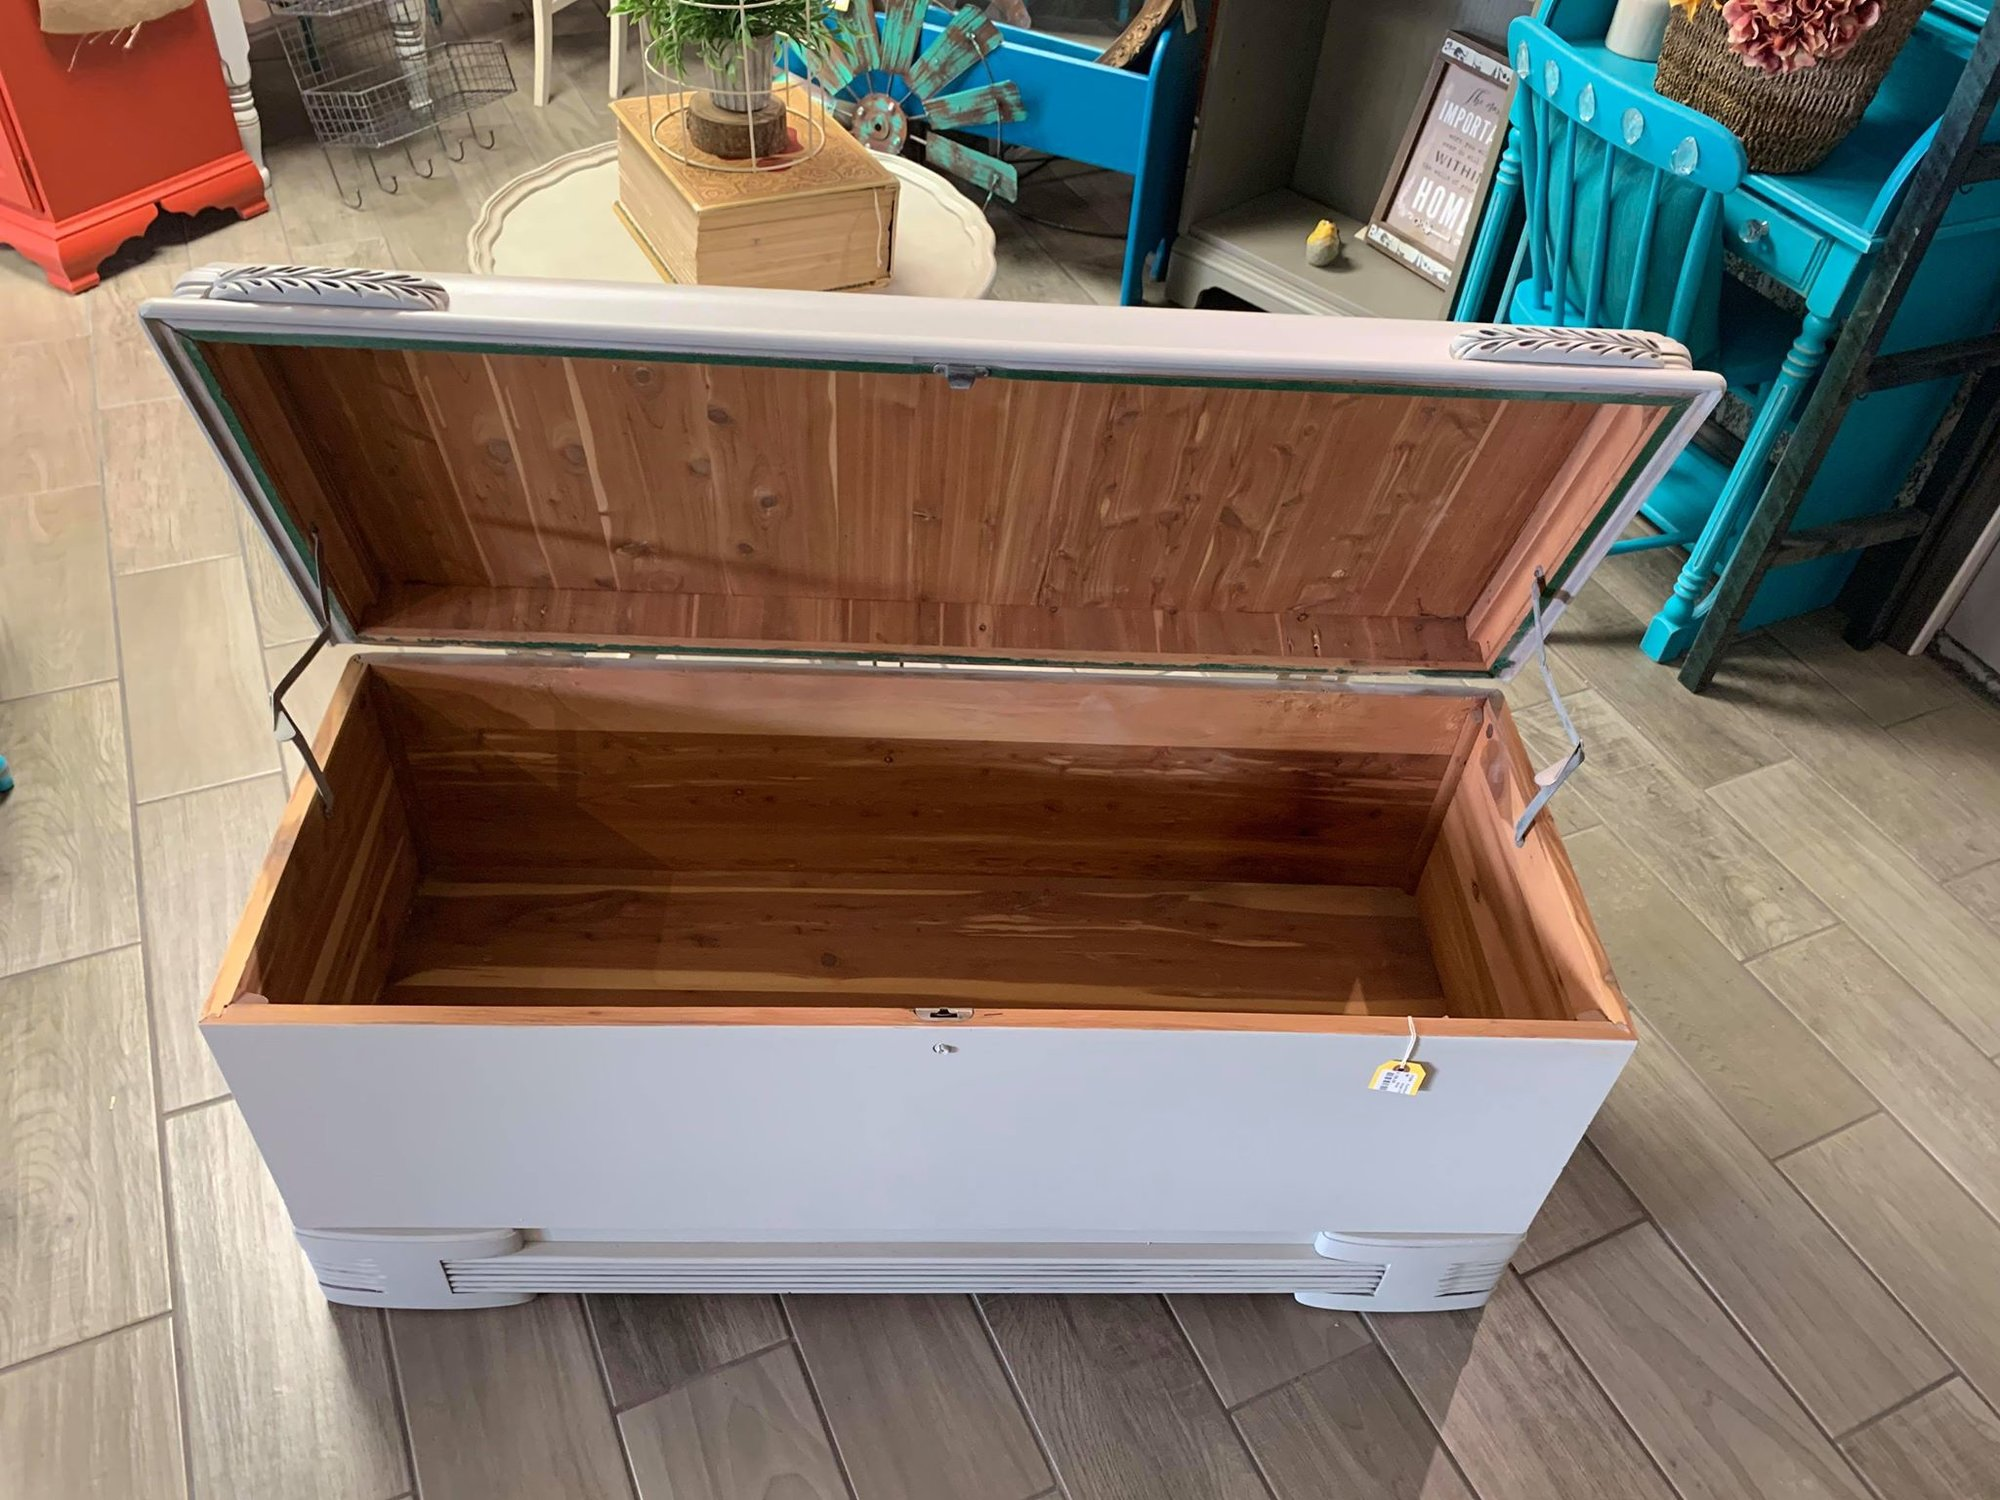 Vintage Art Deco Hope Chest<br /> This is a vintage cedar hope chest that is an art deco style. It has been painted a light gray with antiquing on the handles. The interior of the chest has been left the natural cedar. Chest measures 48&quot; wide x 19&quot; deep x 22&quot; tall. Buzz on in to see it today!